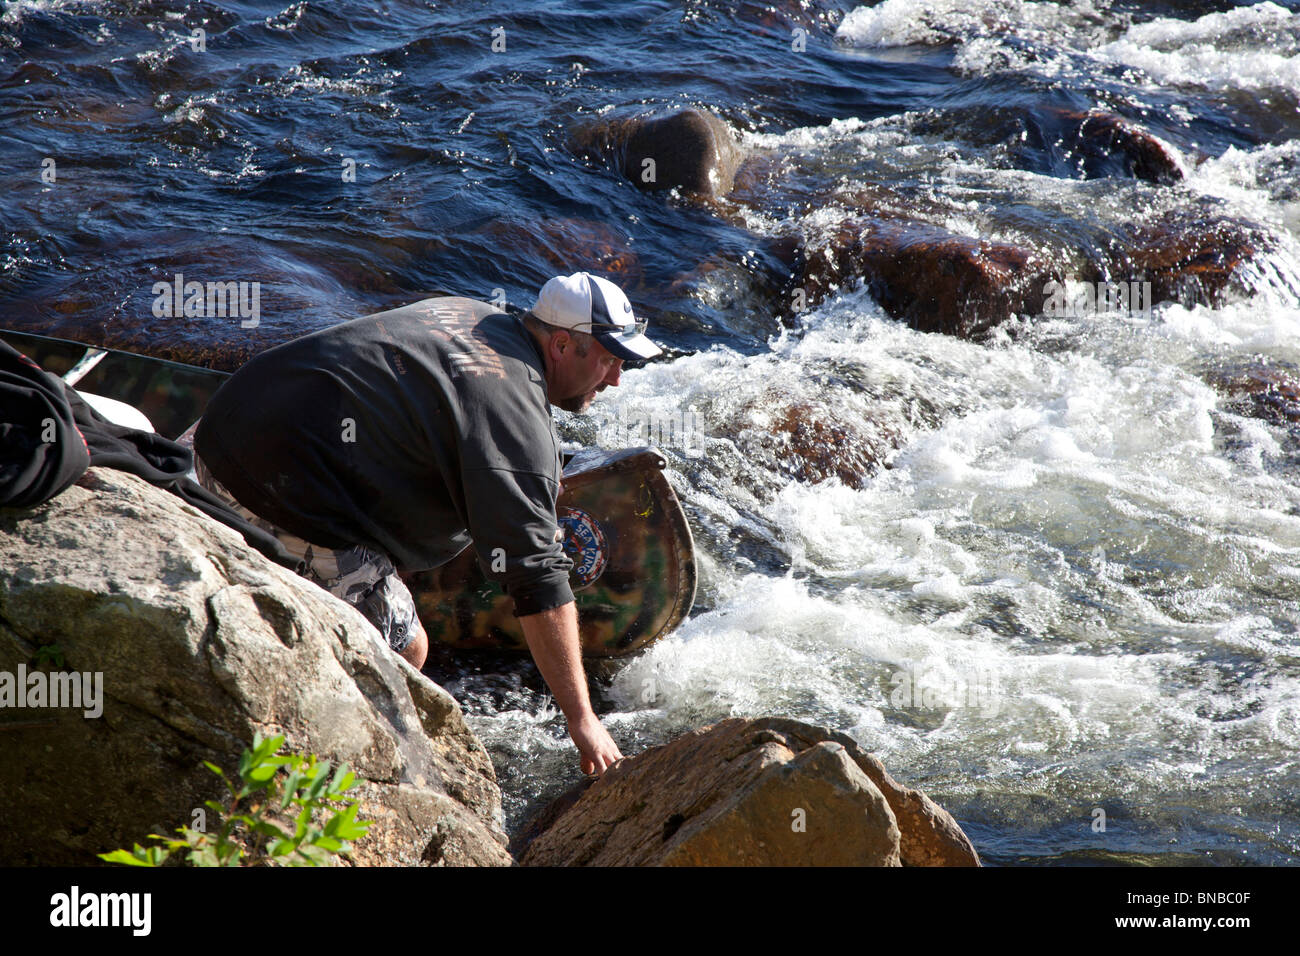 Campton, New Hampshire - A man wading on the Pemigewasset River in the White Mountains guides his canoe through - Stock Image